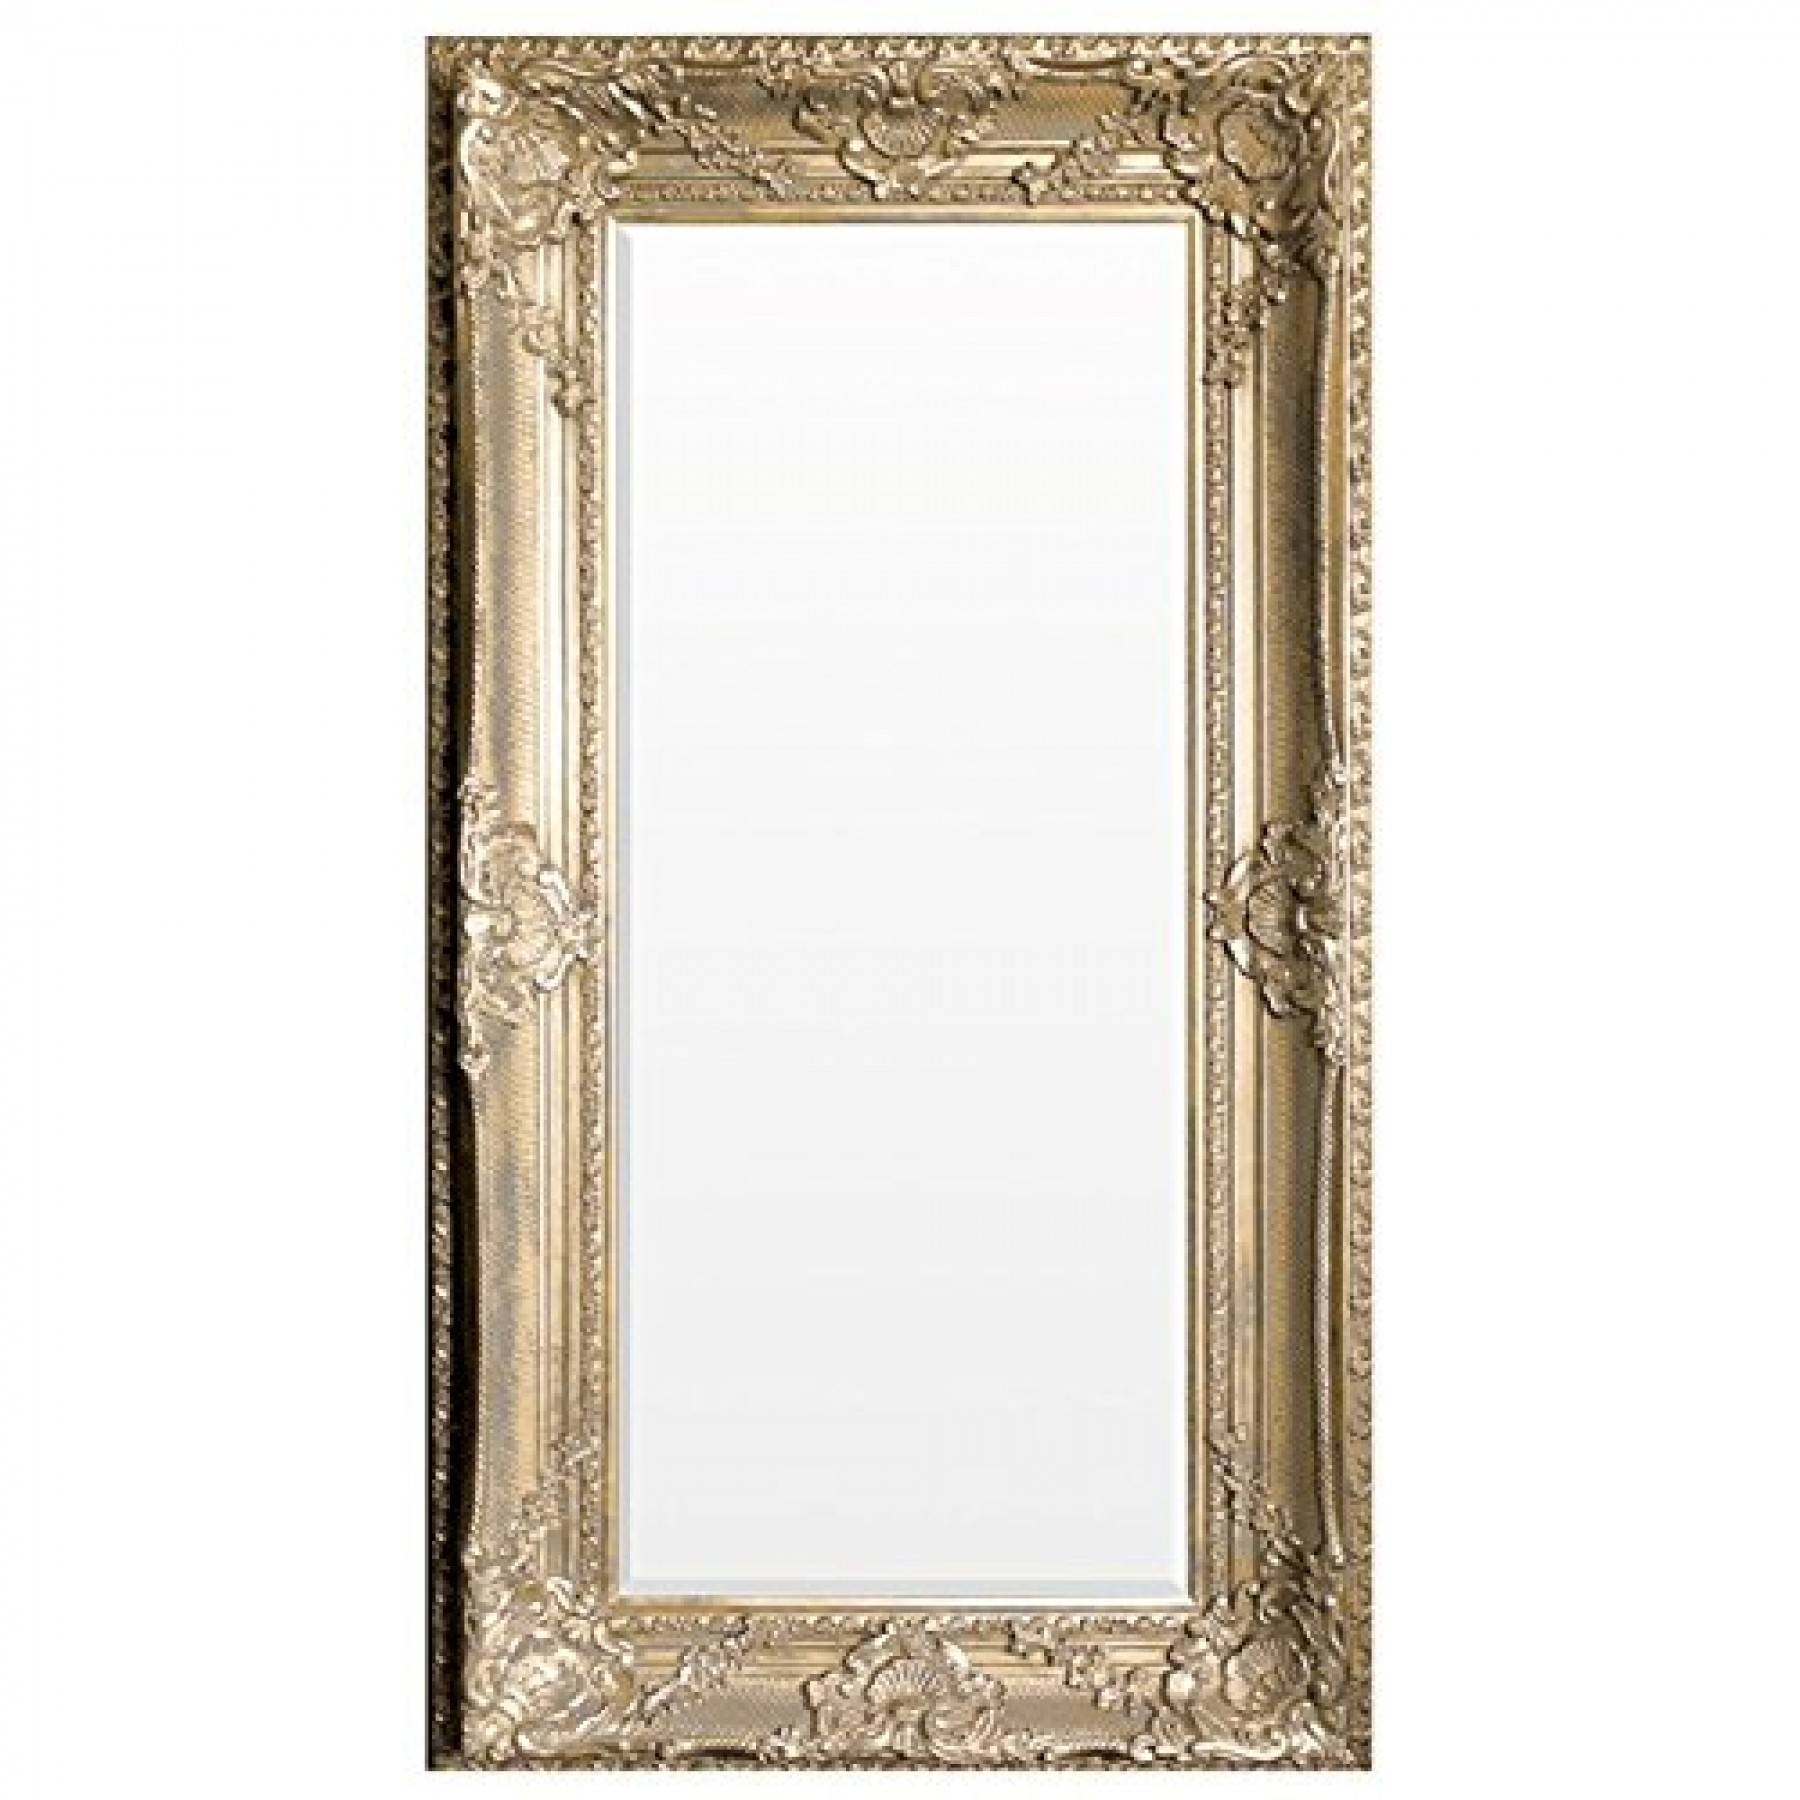 Ornate Shabby Chic Mirror (Extra Large) Intended For Gold Shabby Chic Mirrors (View 14 of 15)